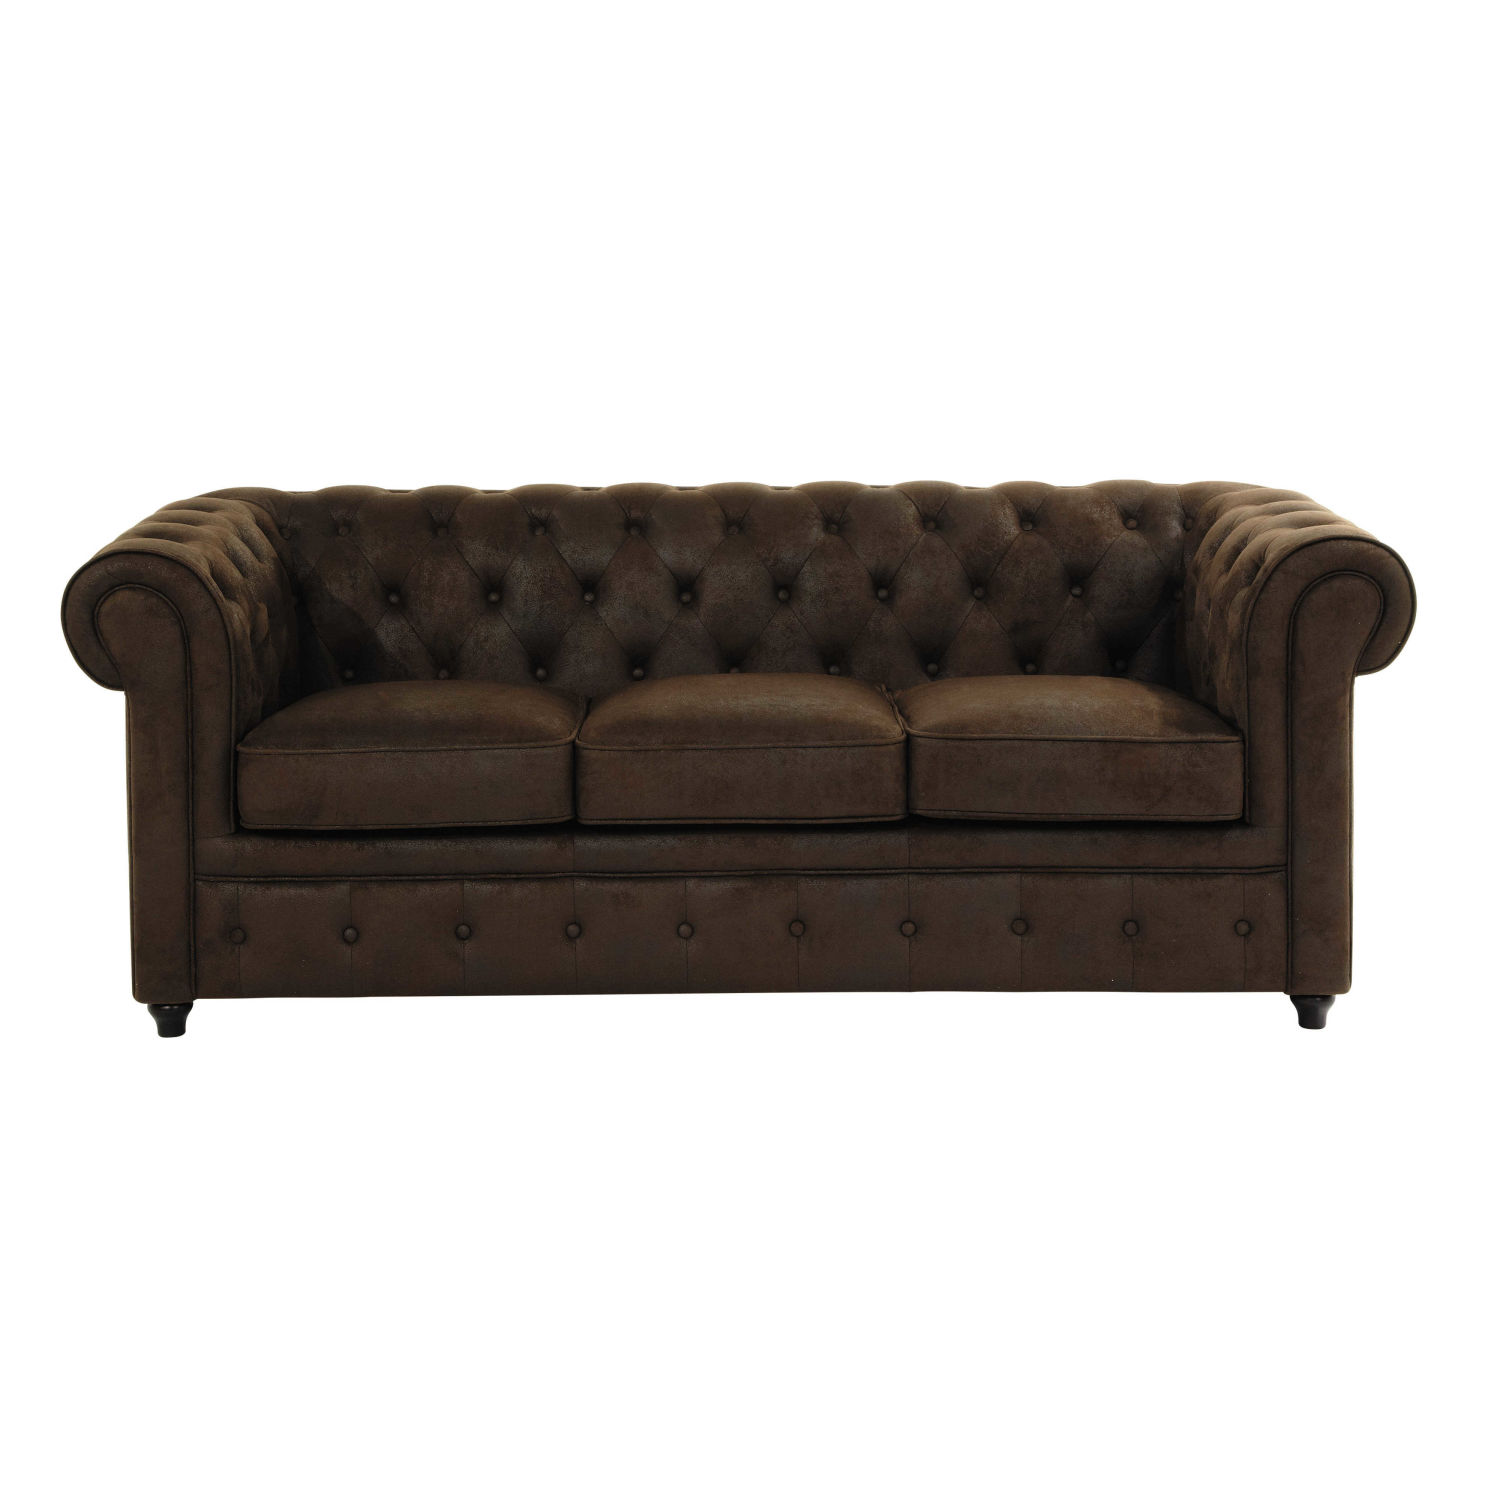 canape capitonne 3 places en suedine marron chesterfield maisons du monde